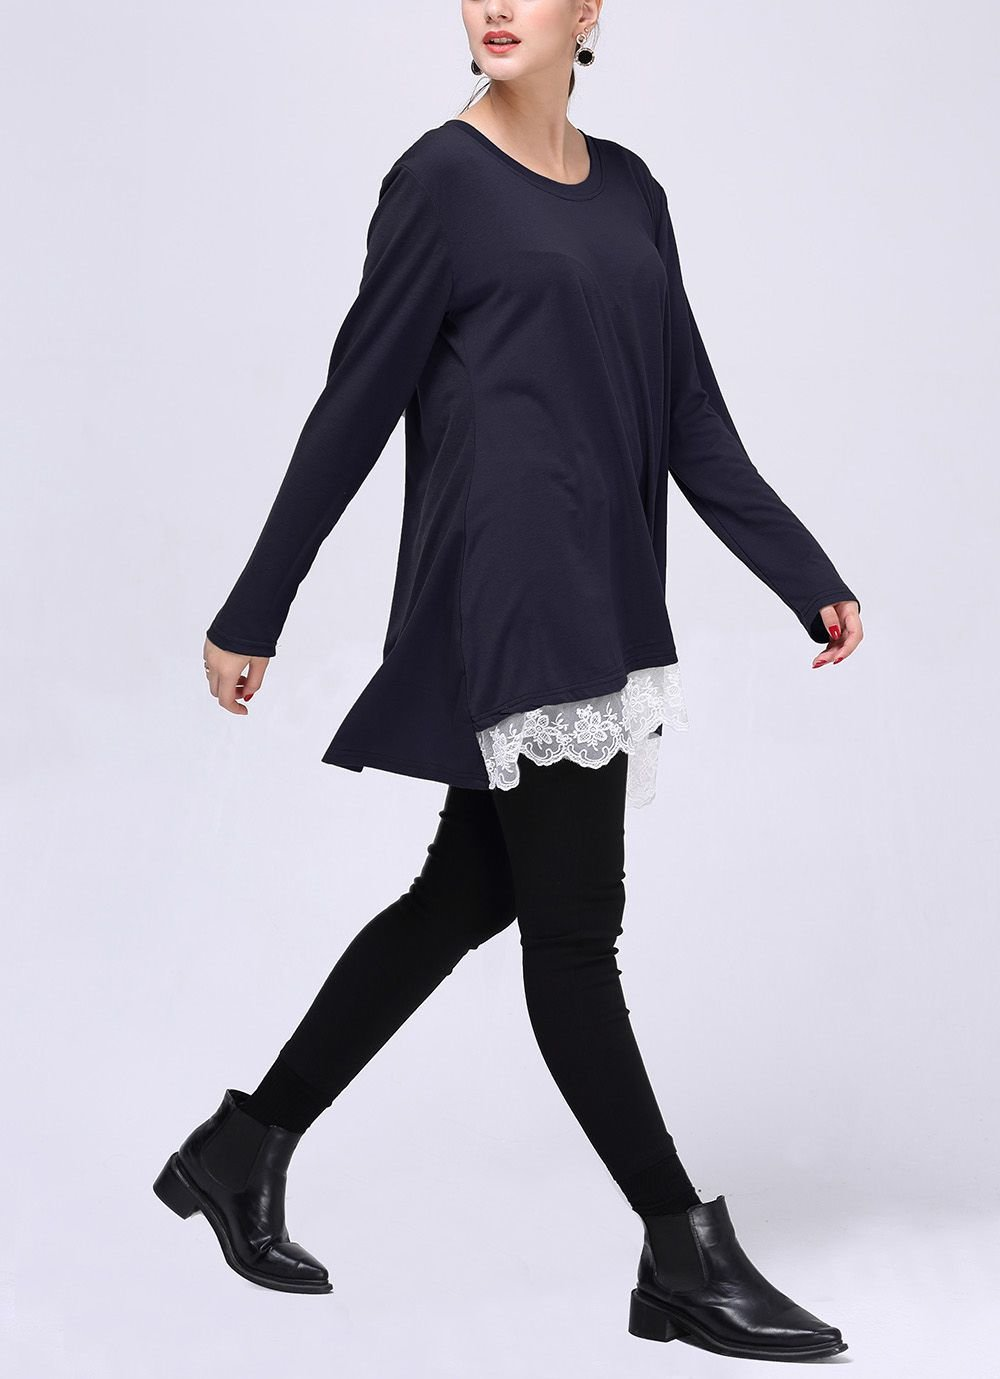 Lace-Trimmed Tee with Long Sleeves